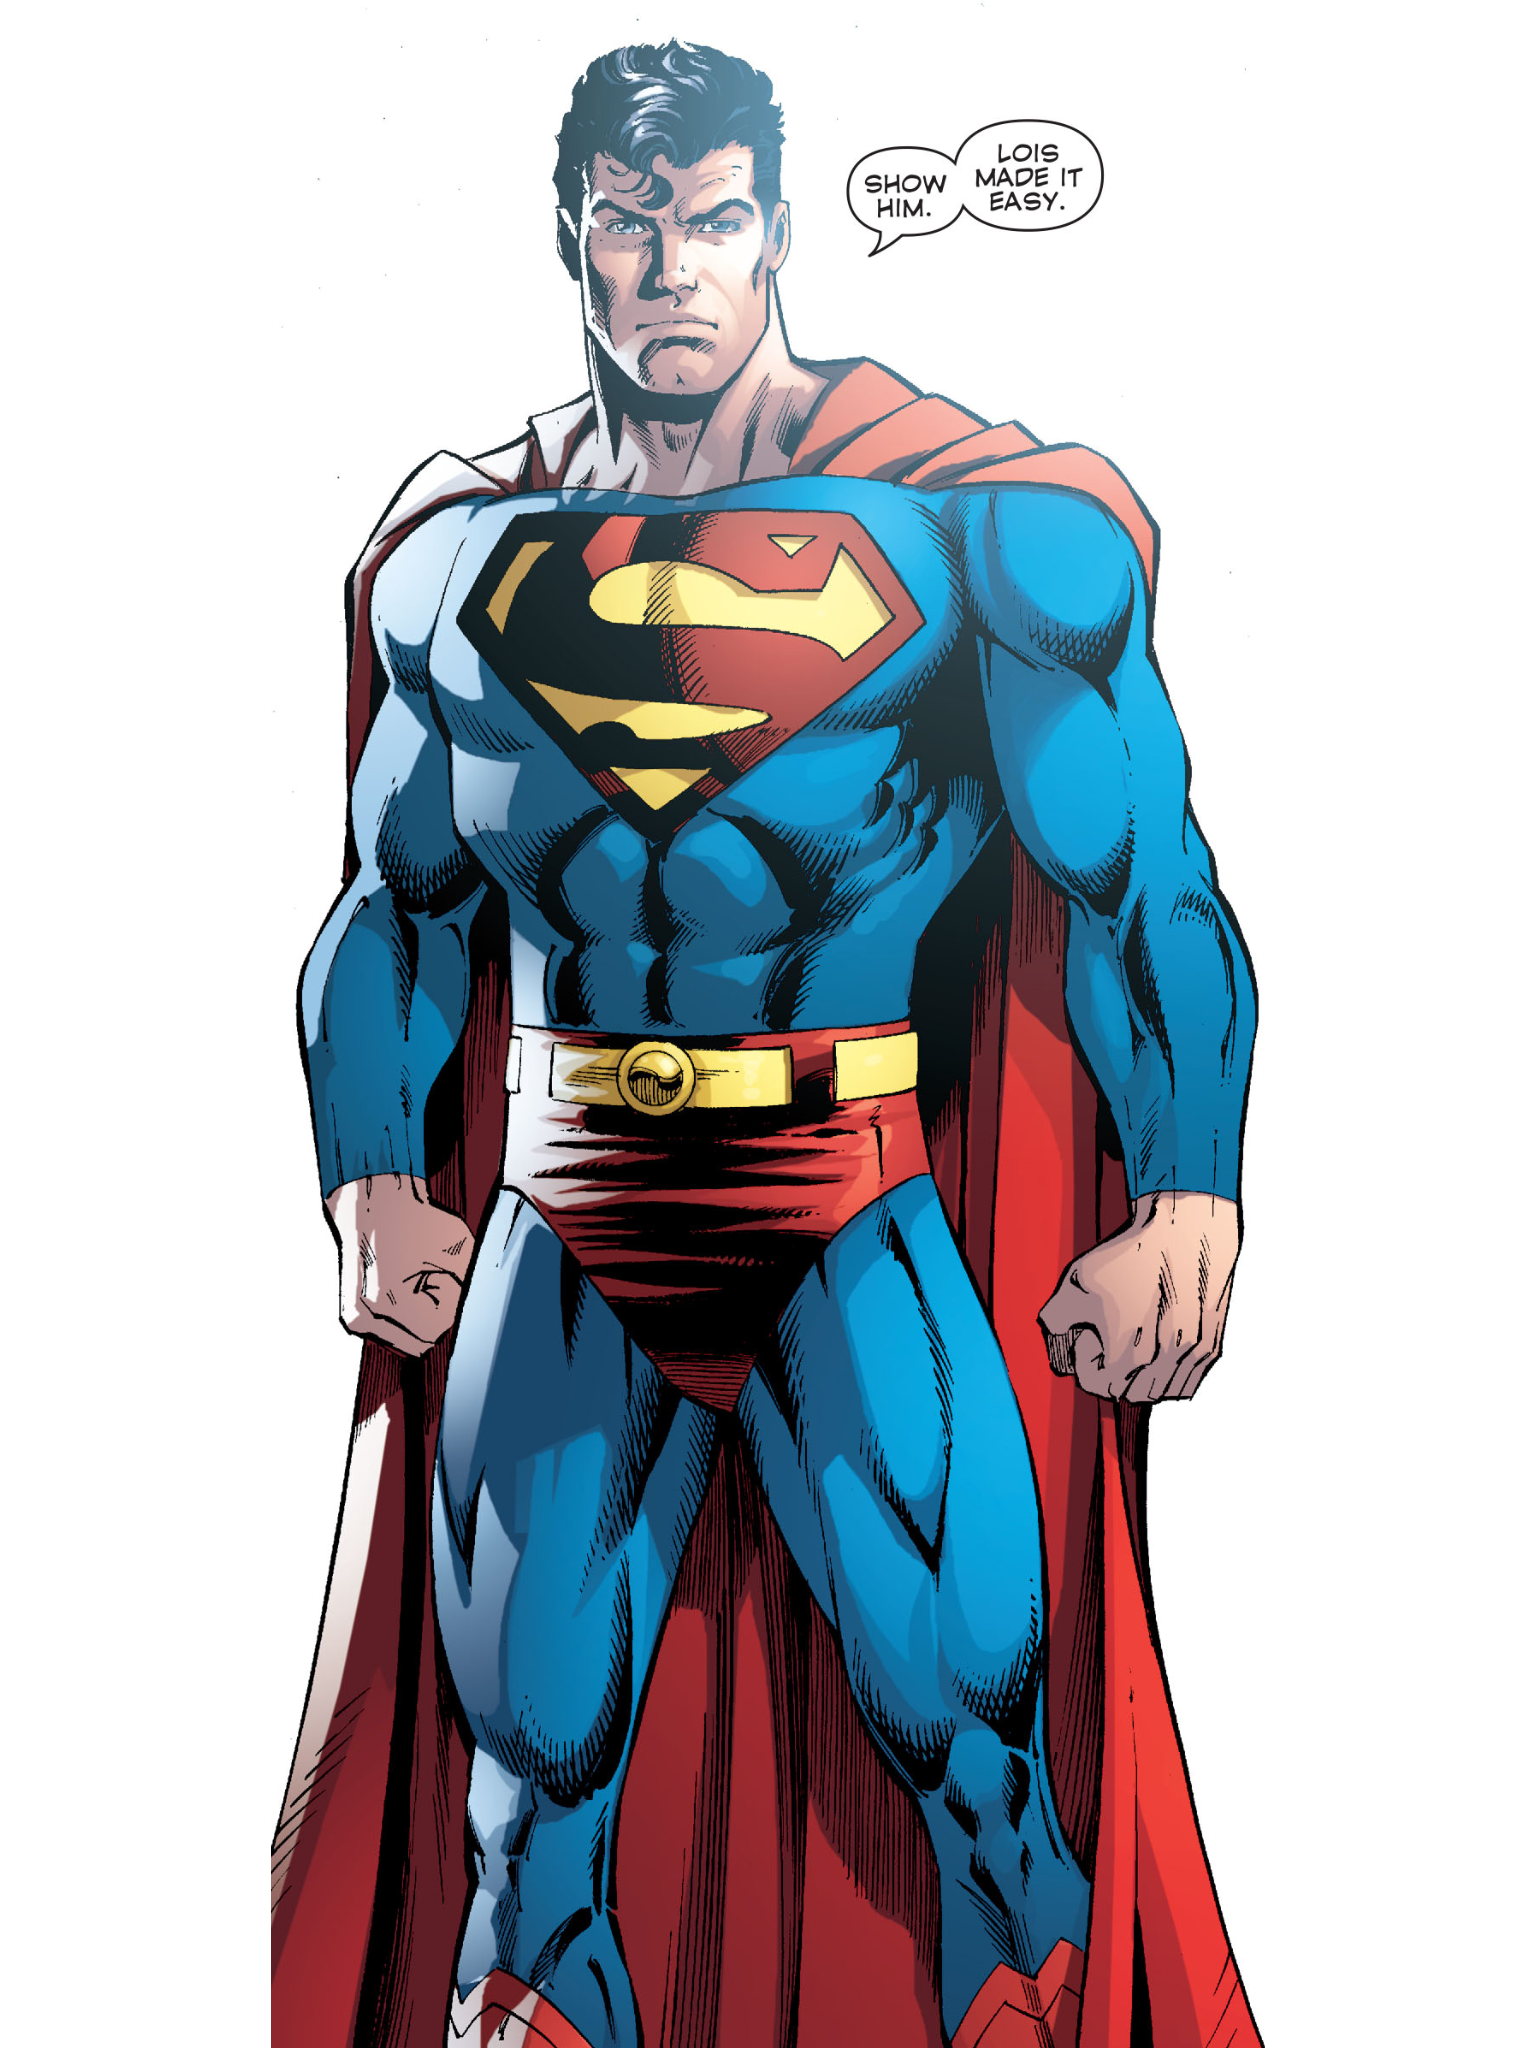 Superman (from Superman: Convergence No.2) Art by Dan Jurgens #Superman #Convergence #DCComics